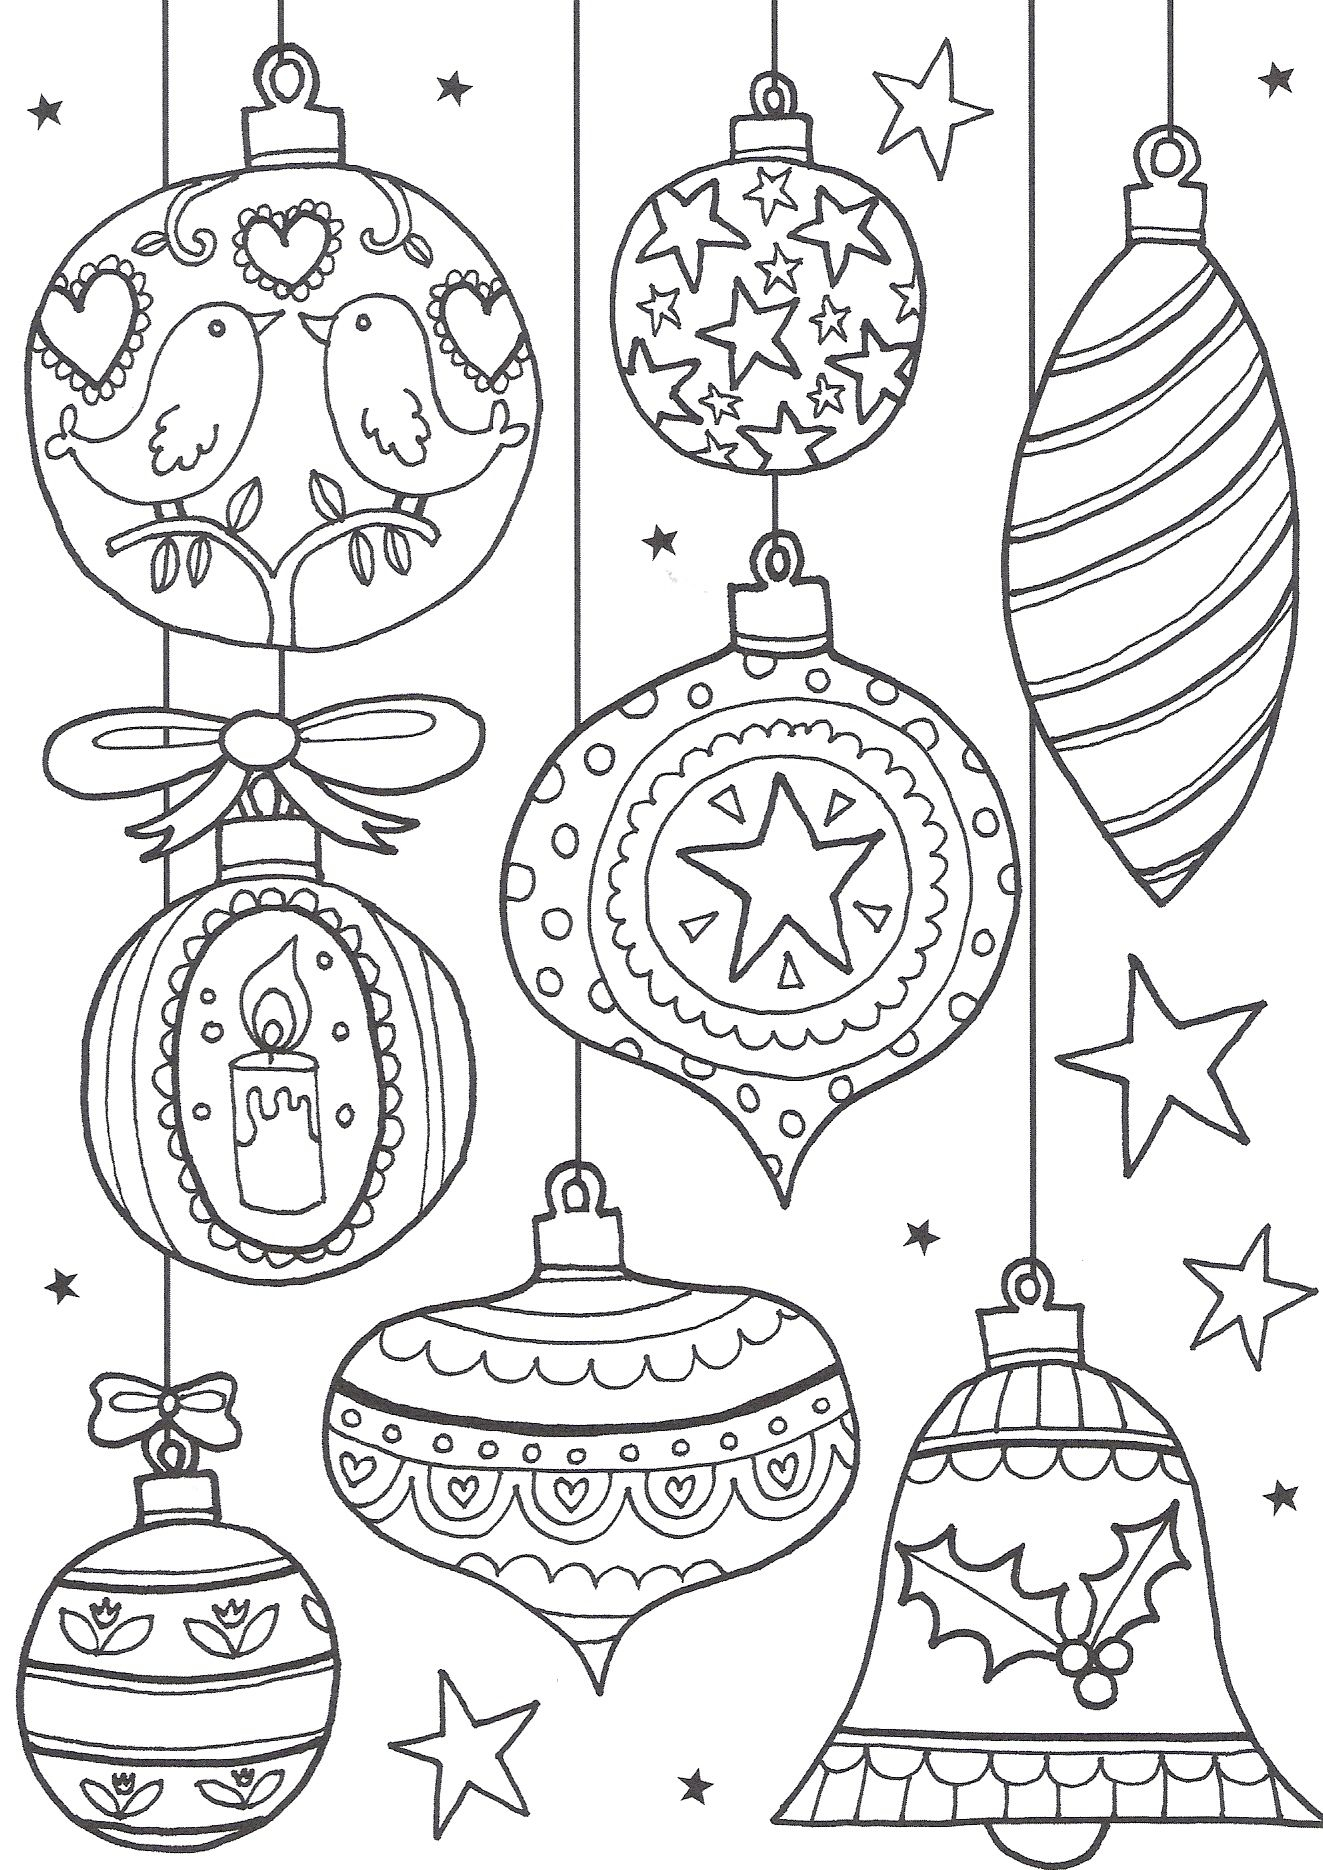 Free Christmas Colouring Pages For Adults – The Ultimate Roundup - Free Printable Christmas Ornaments Stencils